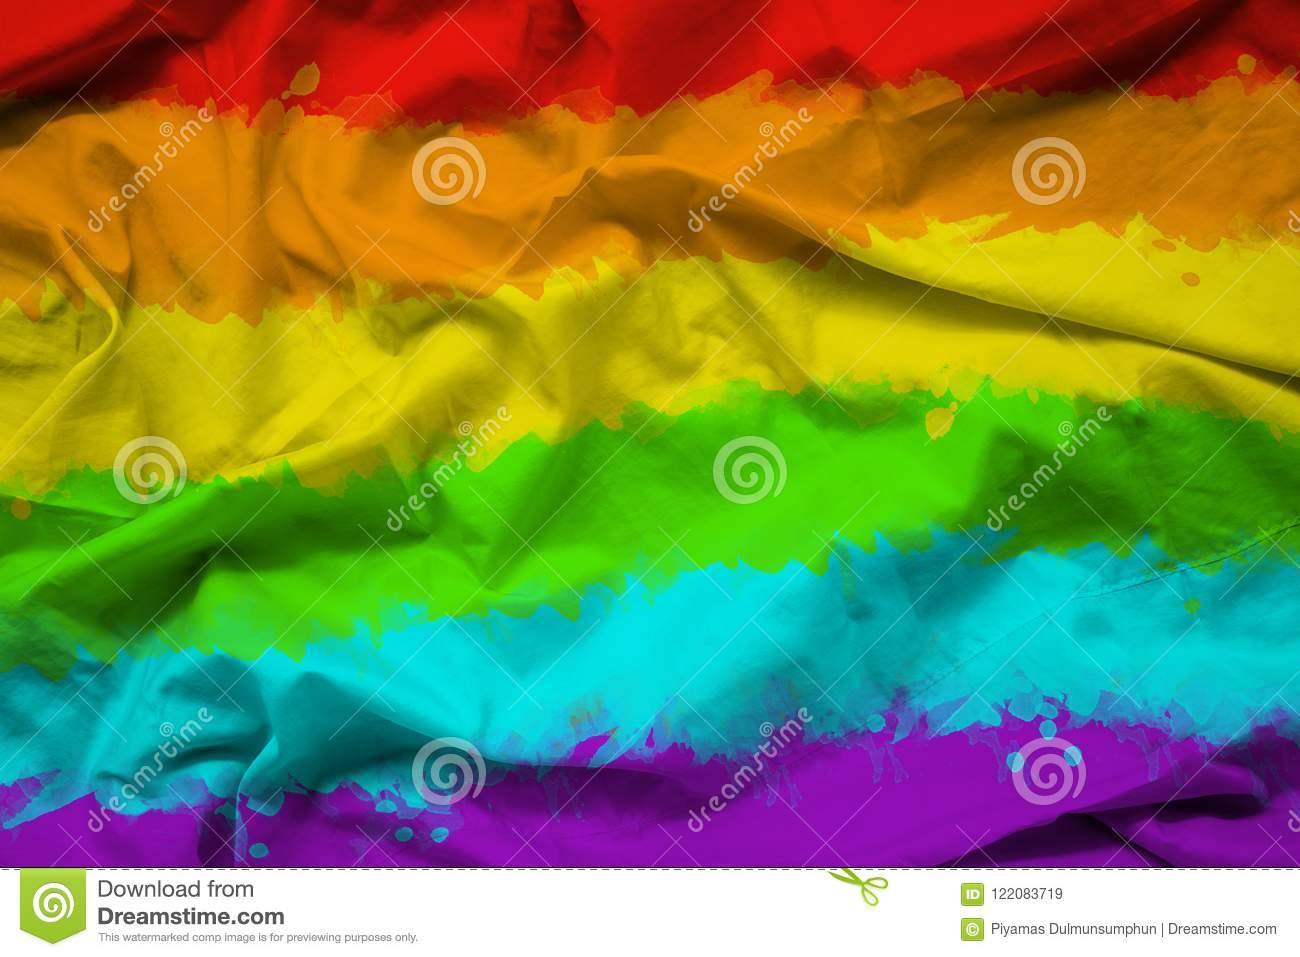 Rainbow flag of LGBTQ for Pride month on fabric texture with ripple